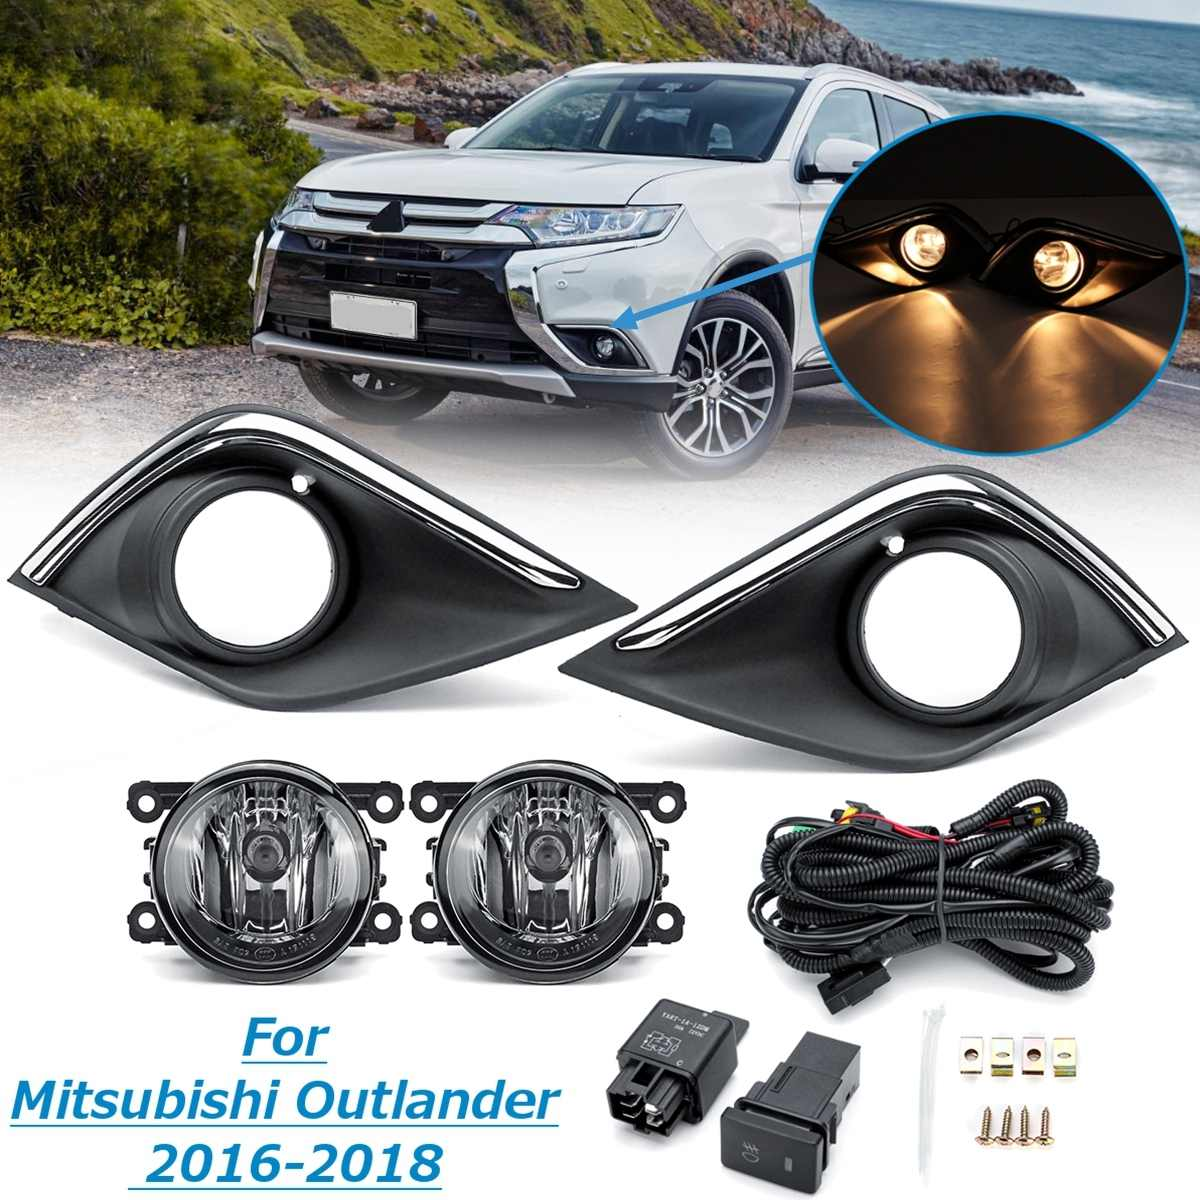 1 Pair Car Bumper Fog light Lamp With Cover Grill Harness Kit For Mitsubishi Outlander 2016 2017 2018 Daytime Light Styling1 Pair Car Bumper Fog light Lamp With Cover Grill Harness Kit For Mitsubishi Outlander 2016 2017 2018 Daytime Light Styling